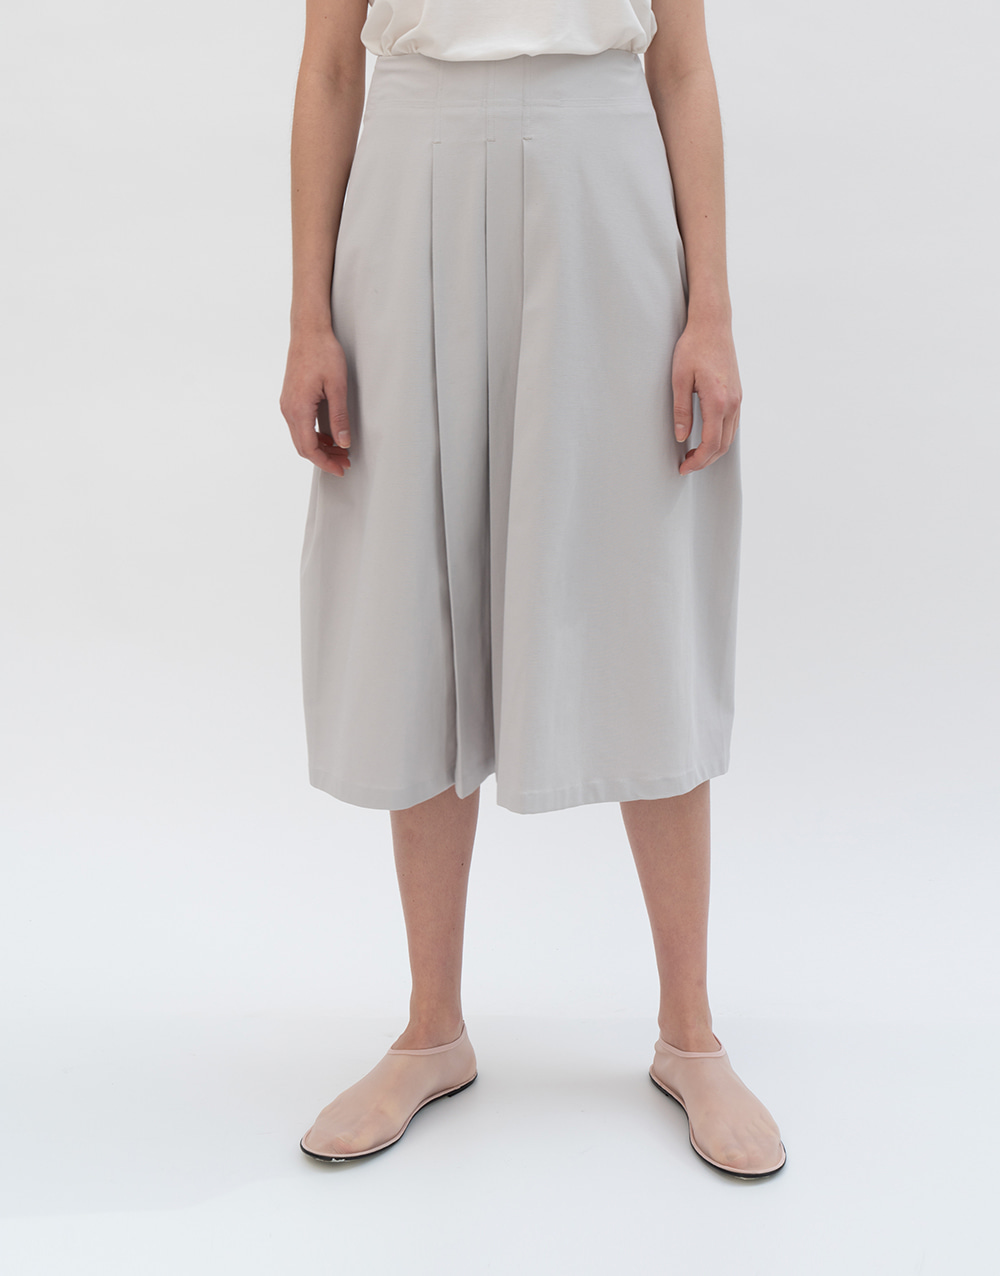 GBH APPAREL ADULT  Tucked Wrap Skirt LIGHT GRAY